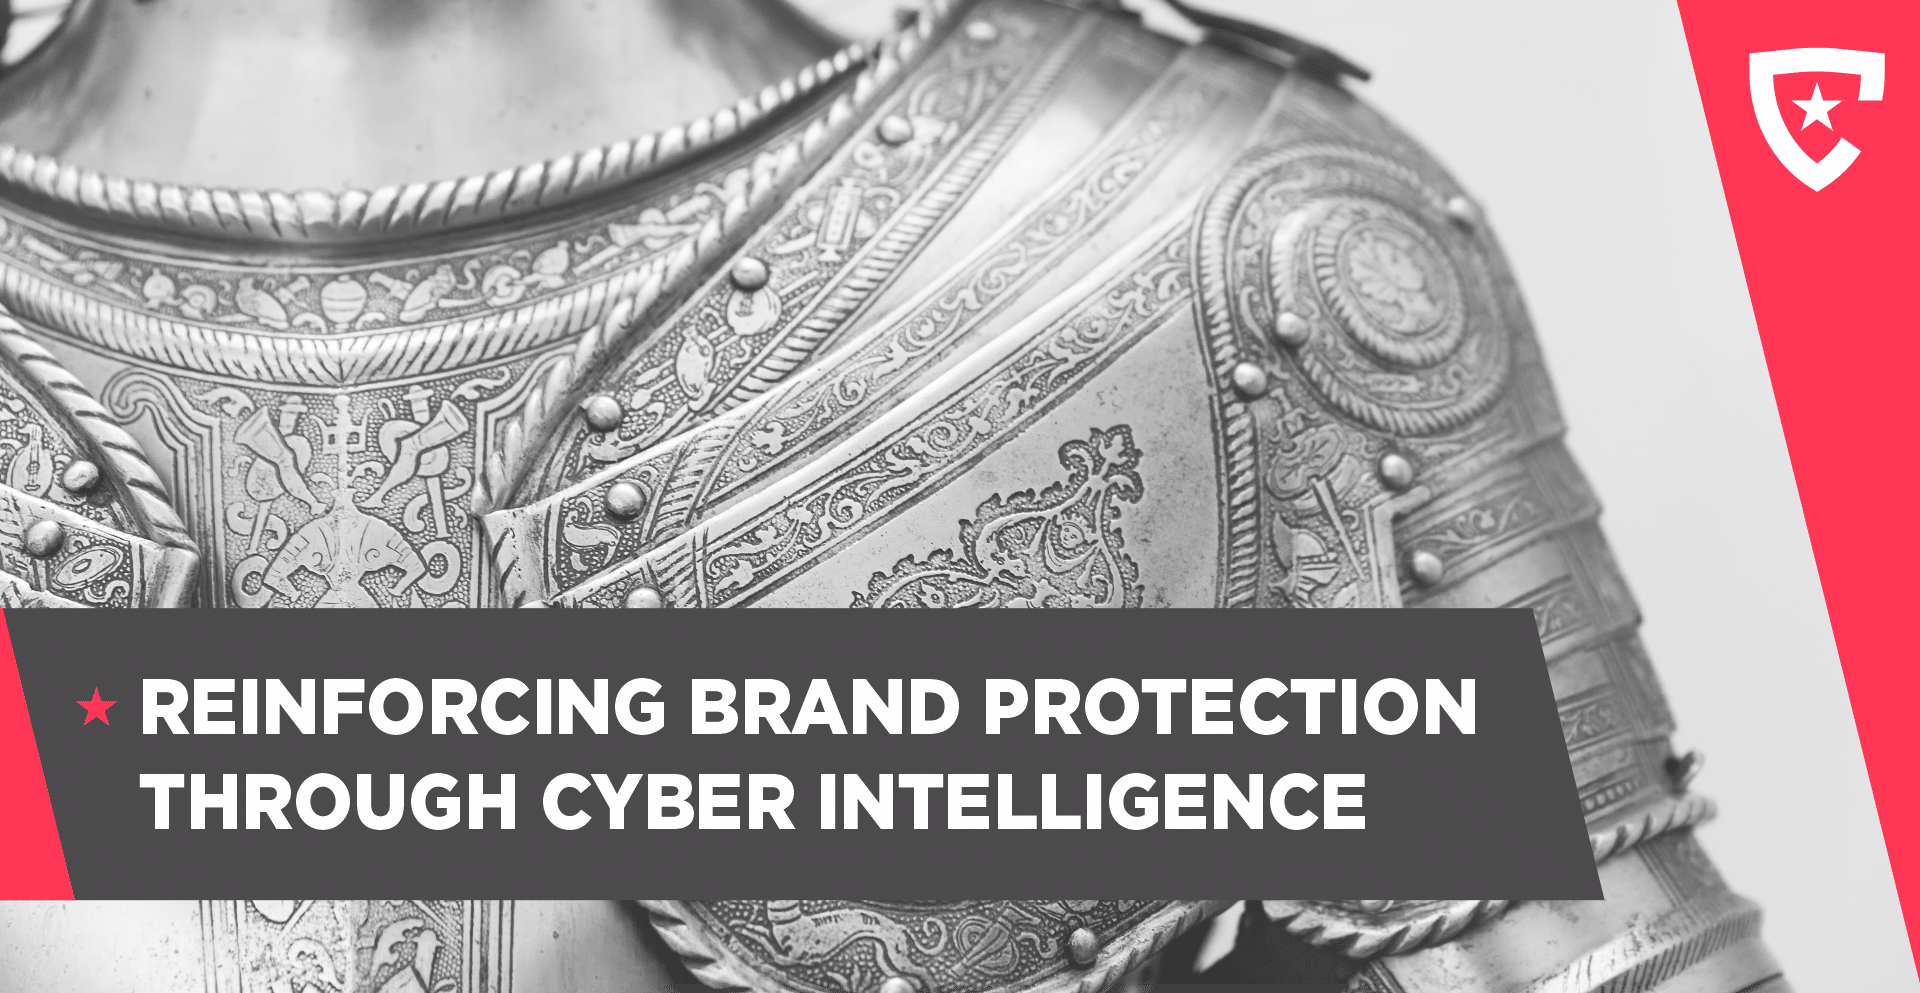 Reinforcing Brand Protection Through Cyber Intelligence